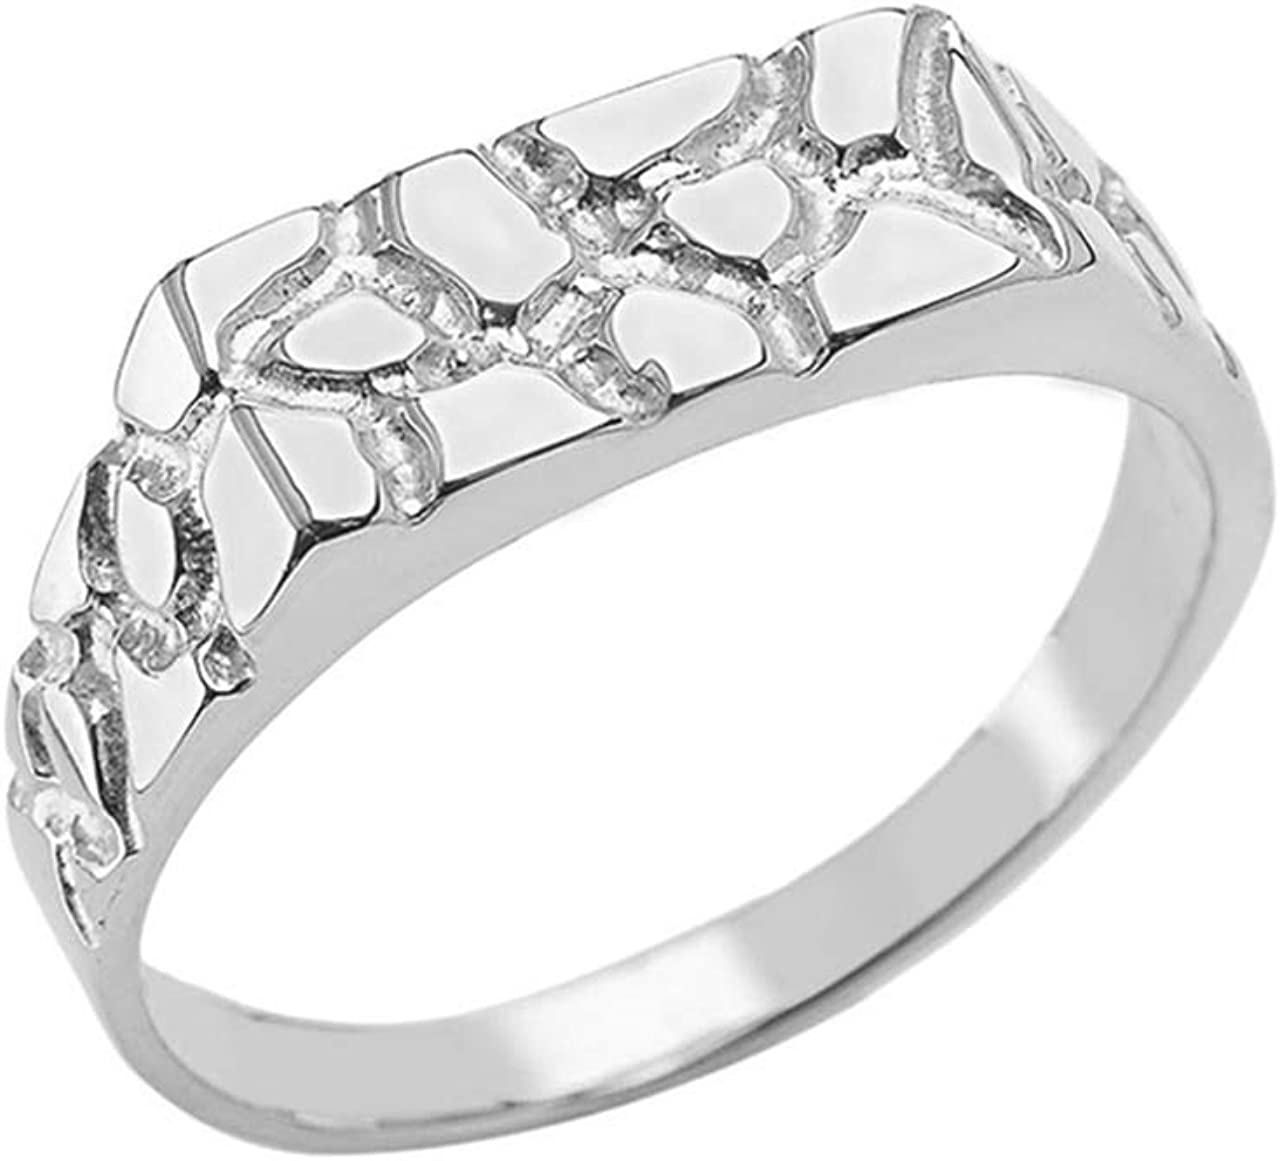 Men's Fine Sterling Silver Flat-Style Pinky Nugget Ring